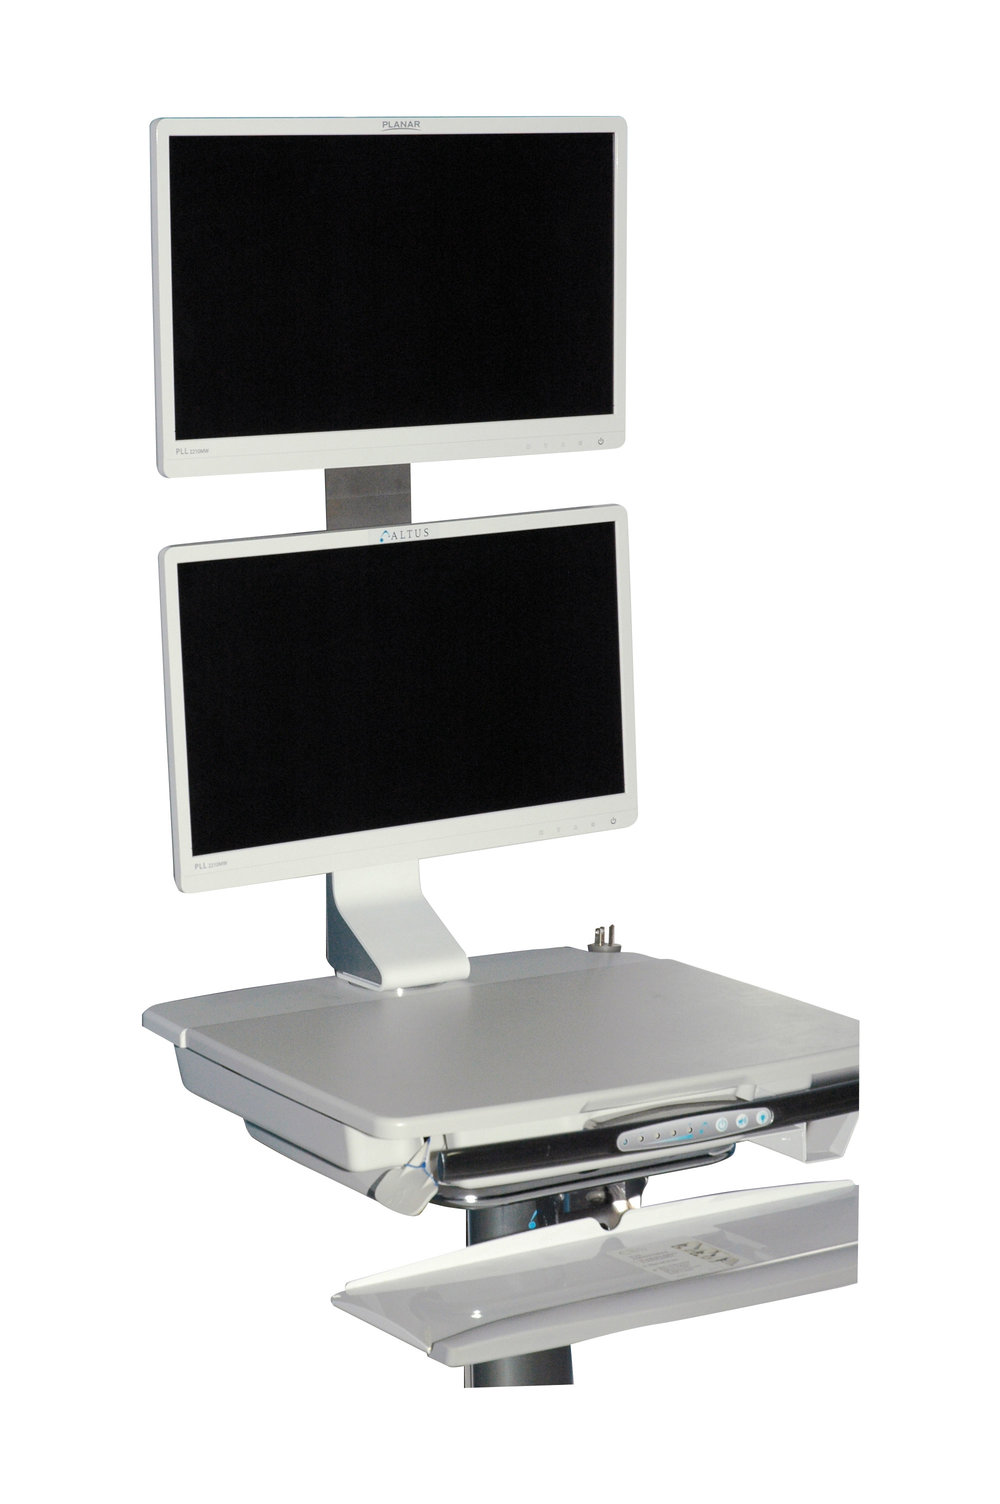 FSD-5 Vertical Dual Monitor Mount - *Non-Standard Product Offering with Extended Lead Times